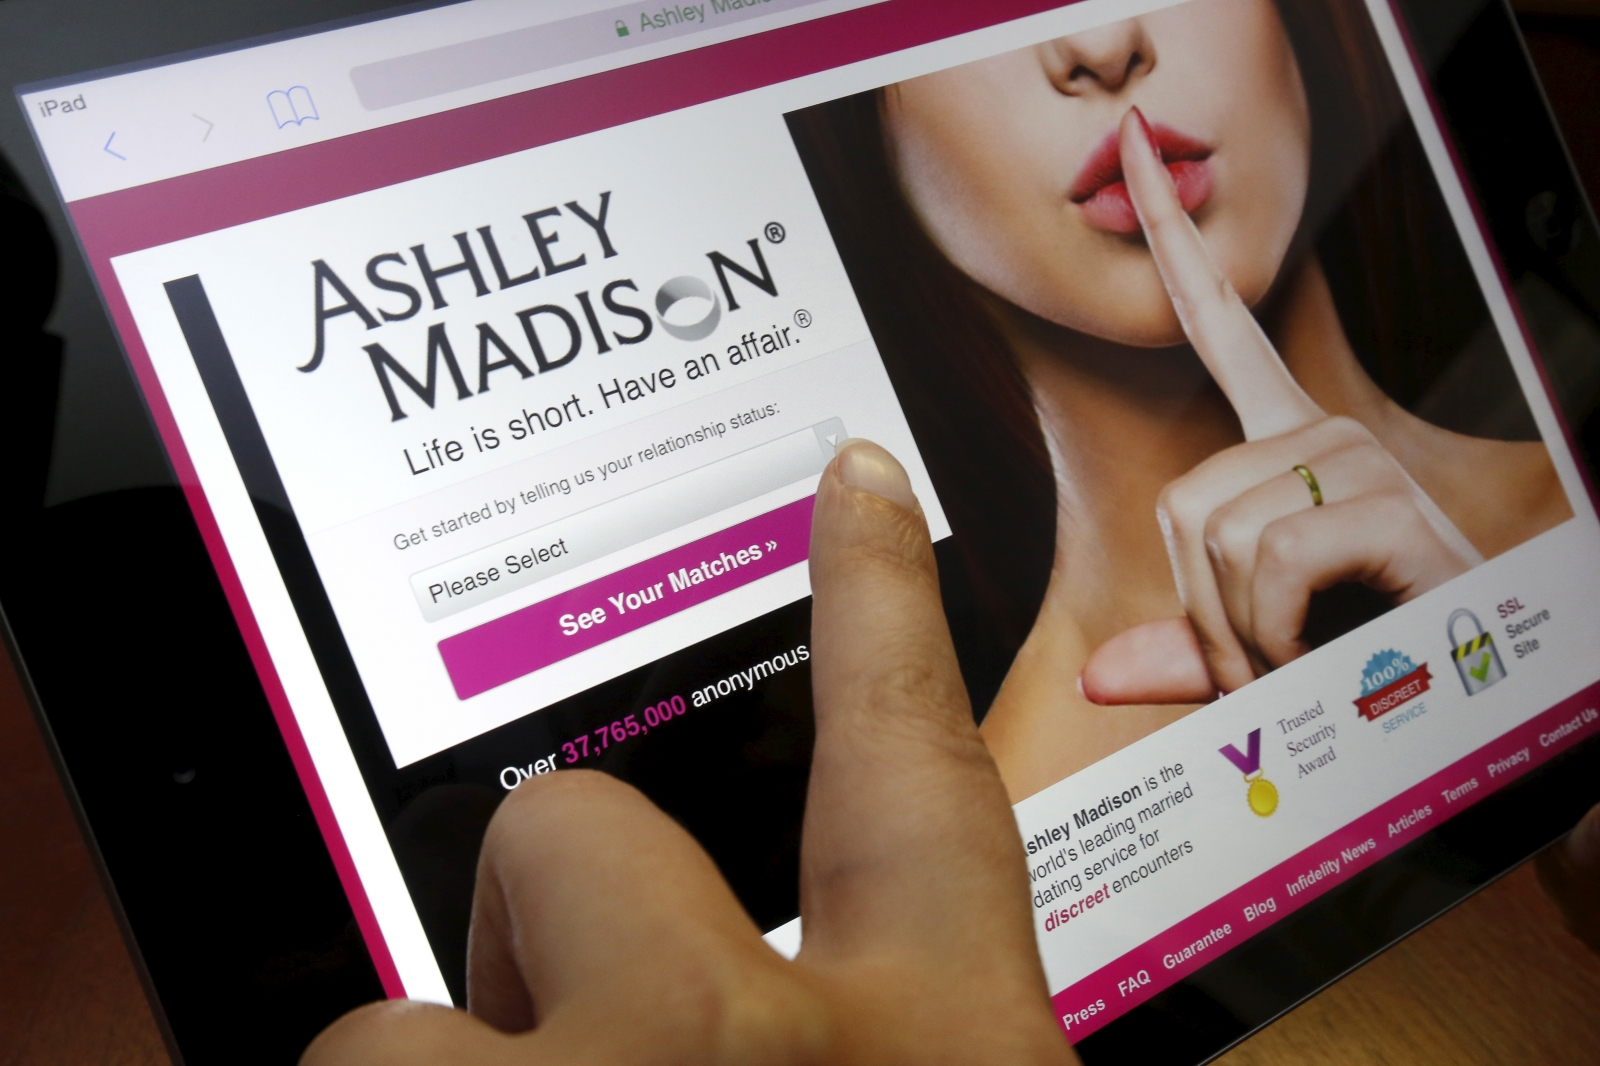 dating site hacked list Ashley madison's company following the hack users whose details were leaked are filing a $567 million class-action lawsuit against avid dating.